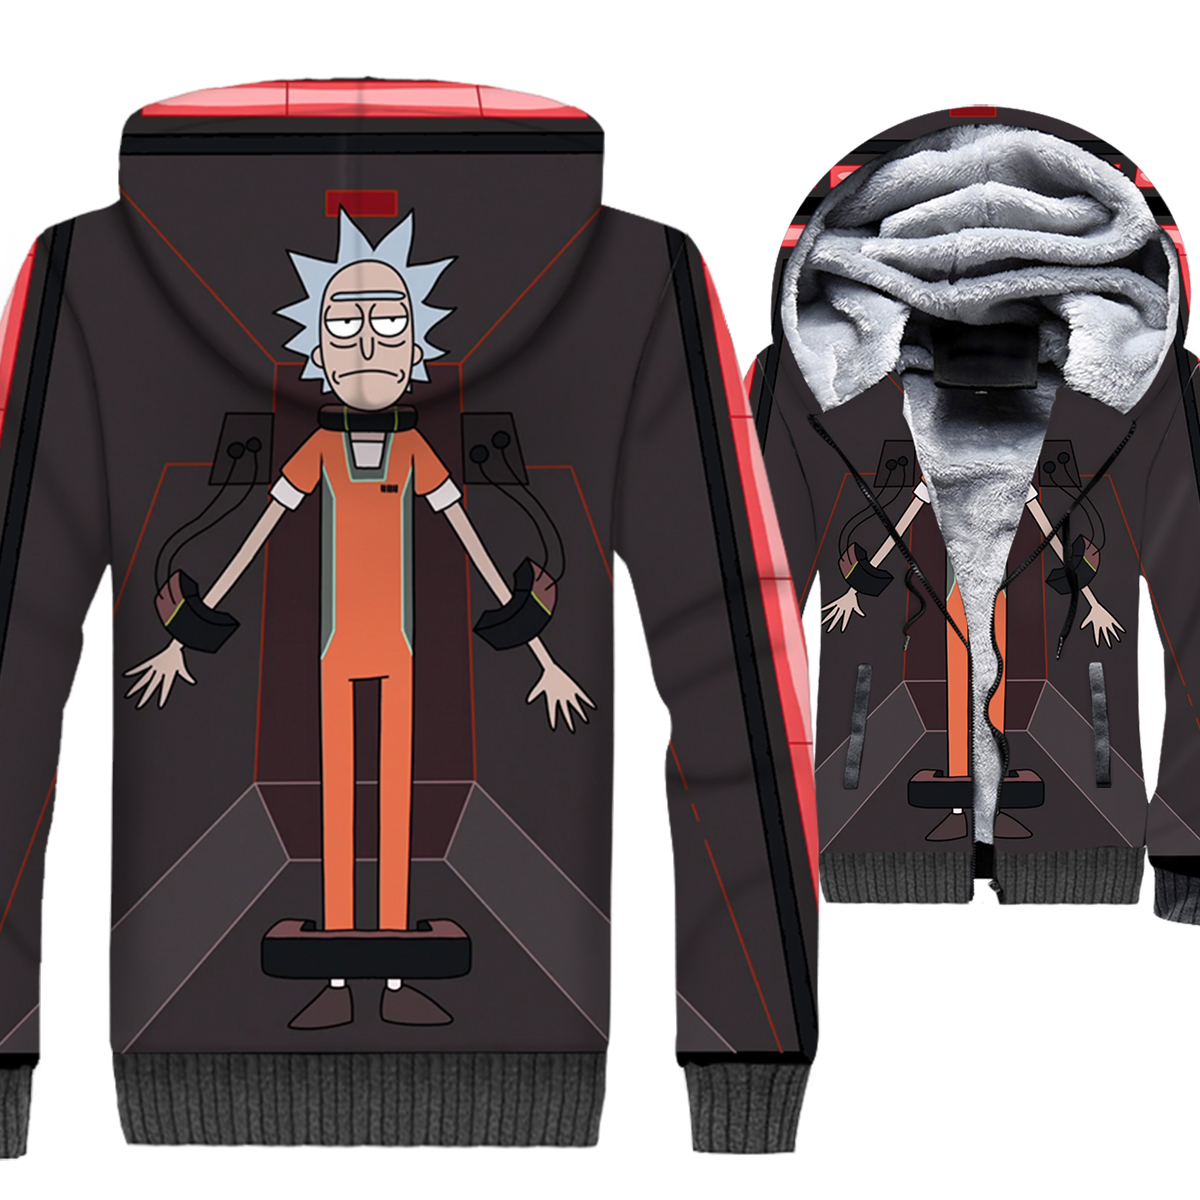 2019 new streetwear brand tracksuits winter hot sale 3D Printing man jackets casual wool liner coats Anime rick and morty hoodie in Hoodies amp Sweatshirts from Men 39 s Clothing